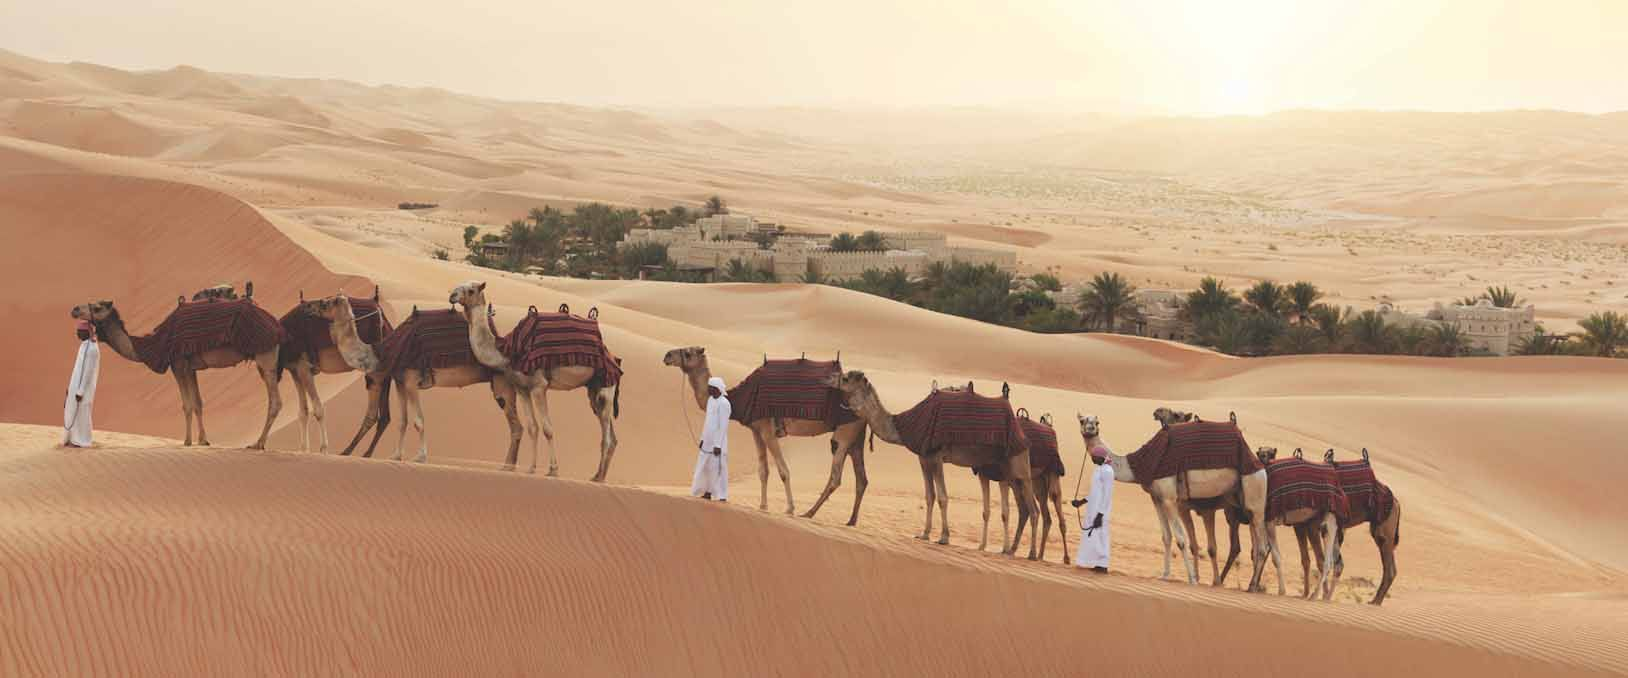 Tatler Itinerary: What To Do In Abu Dhabi